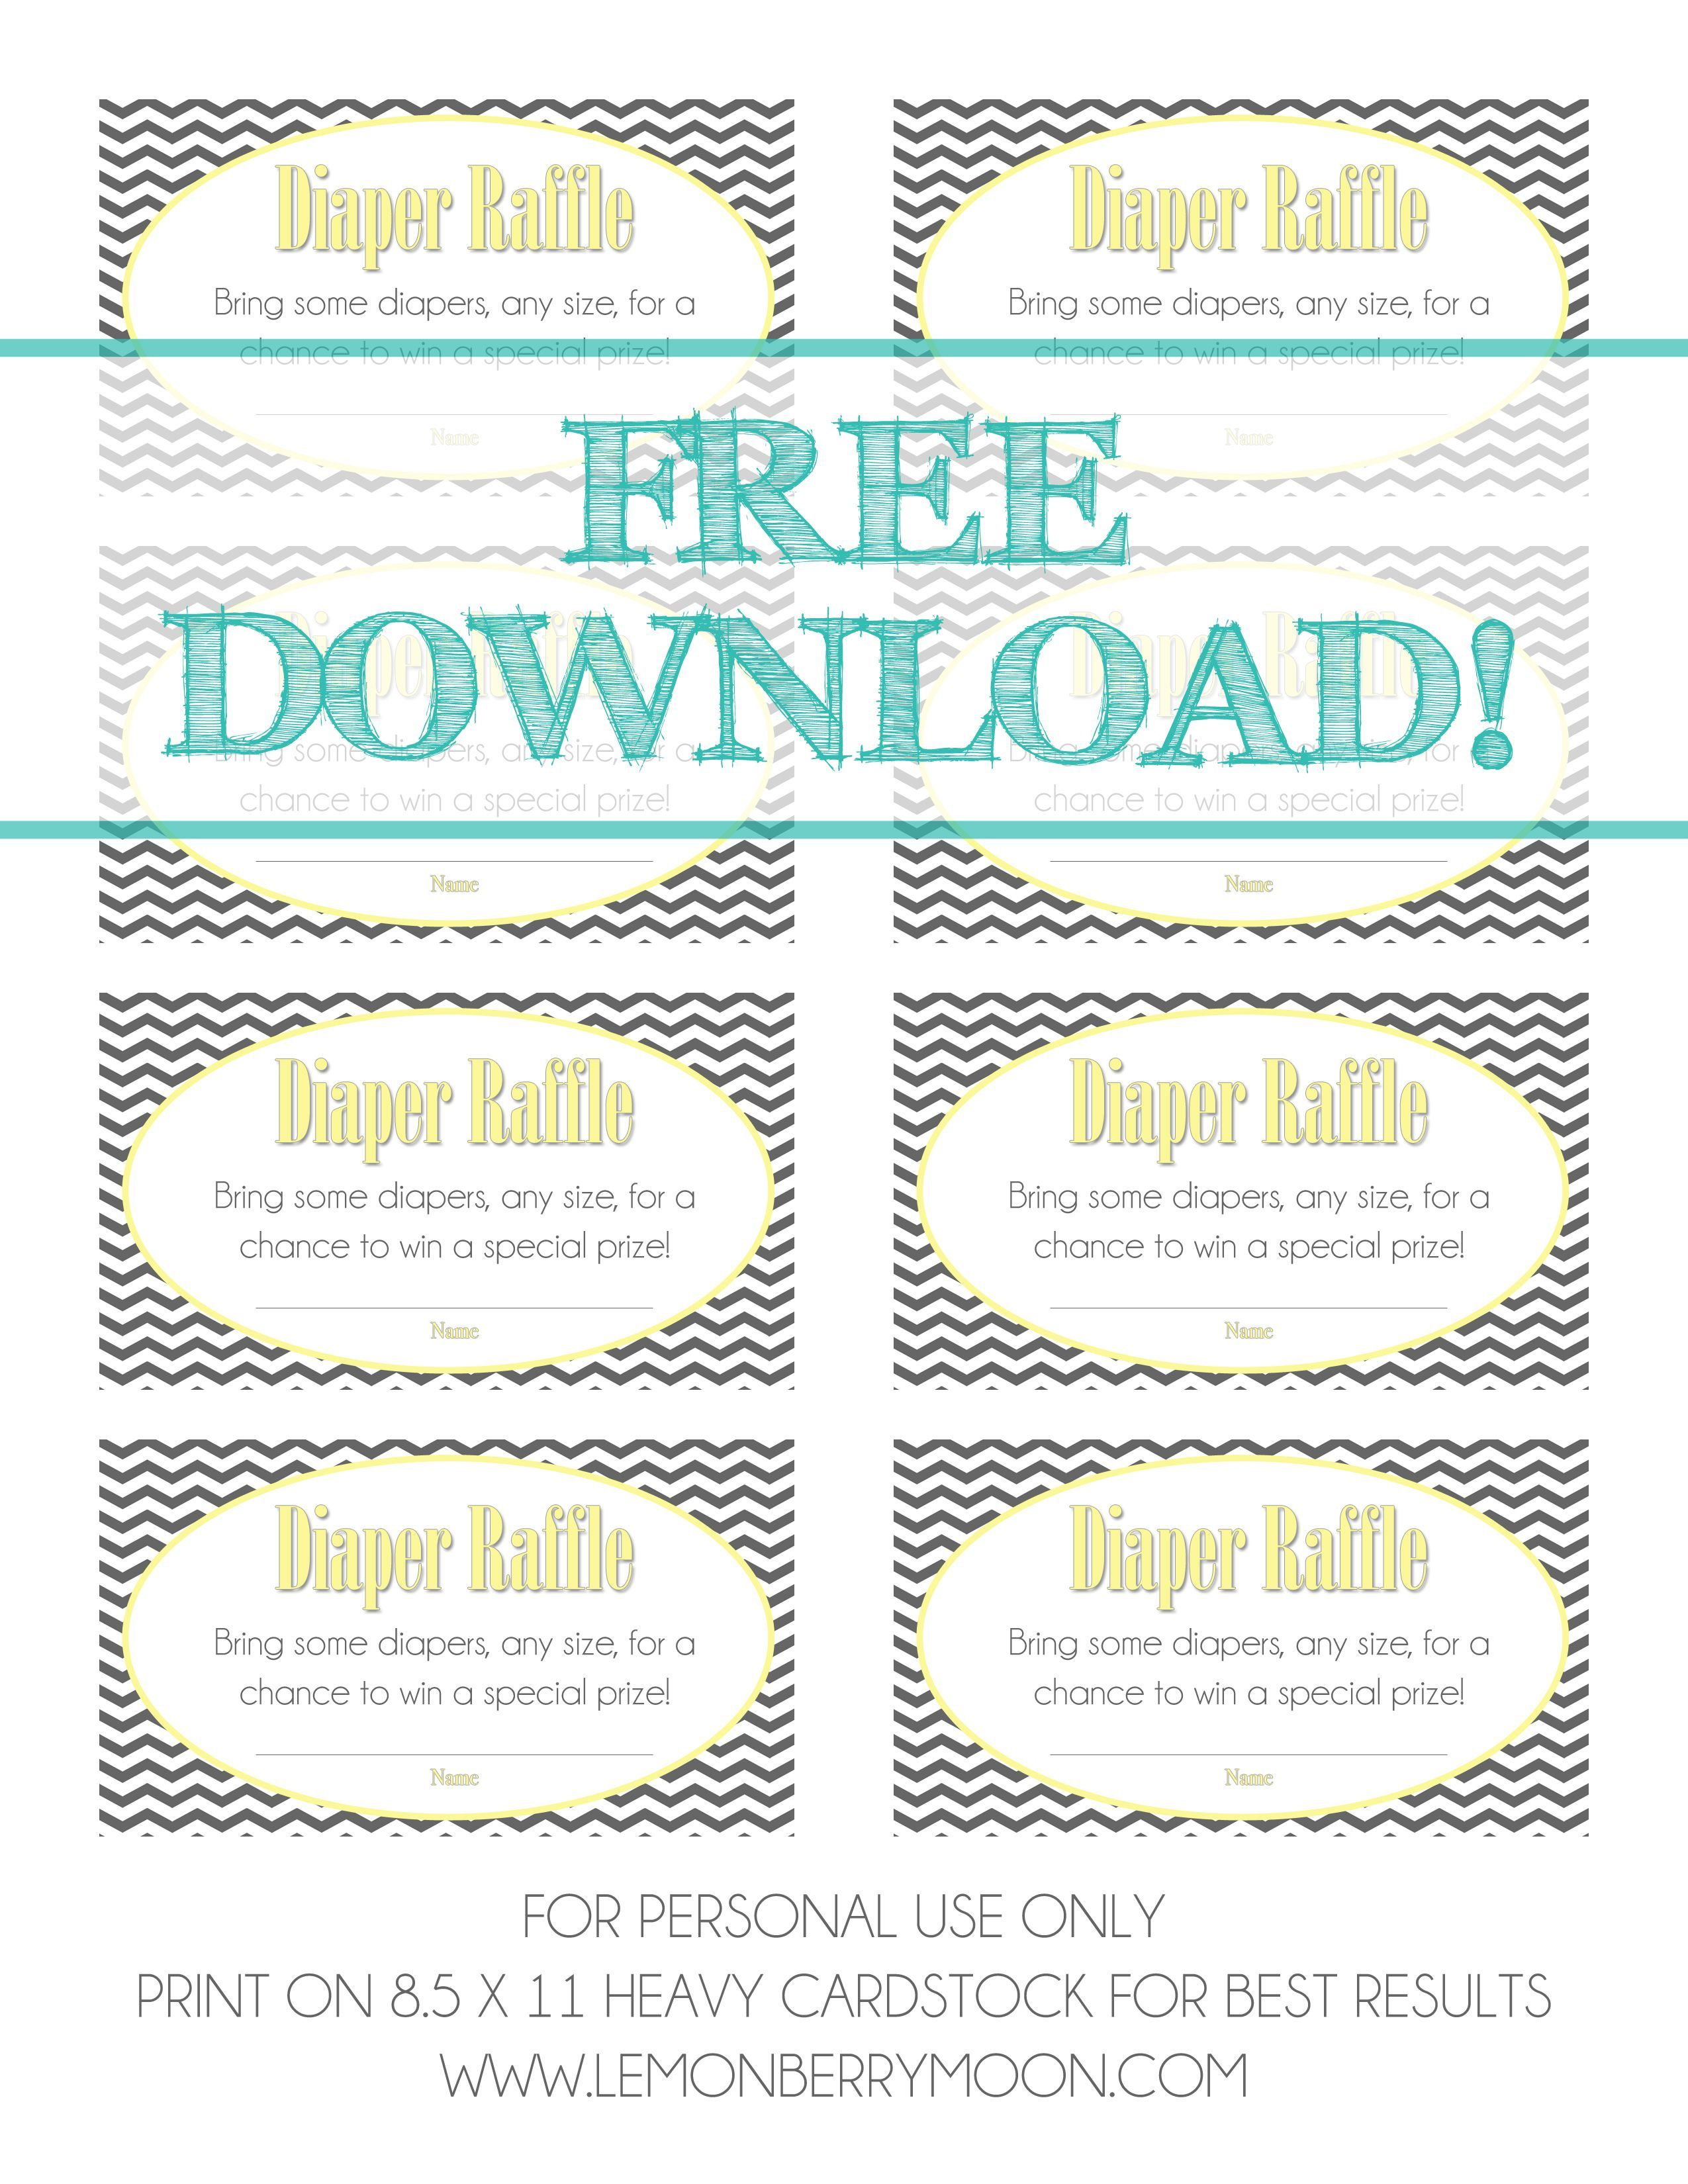 002 Remarkable Diaper Raffle Ticket Template Highest Quality  Free Printable DownloadFull